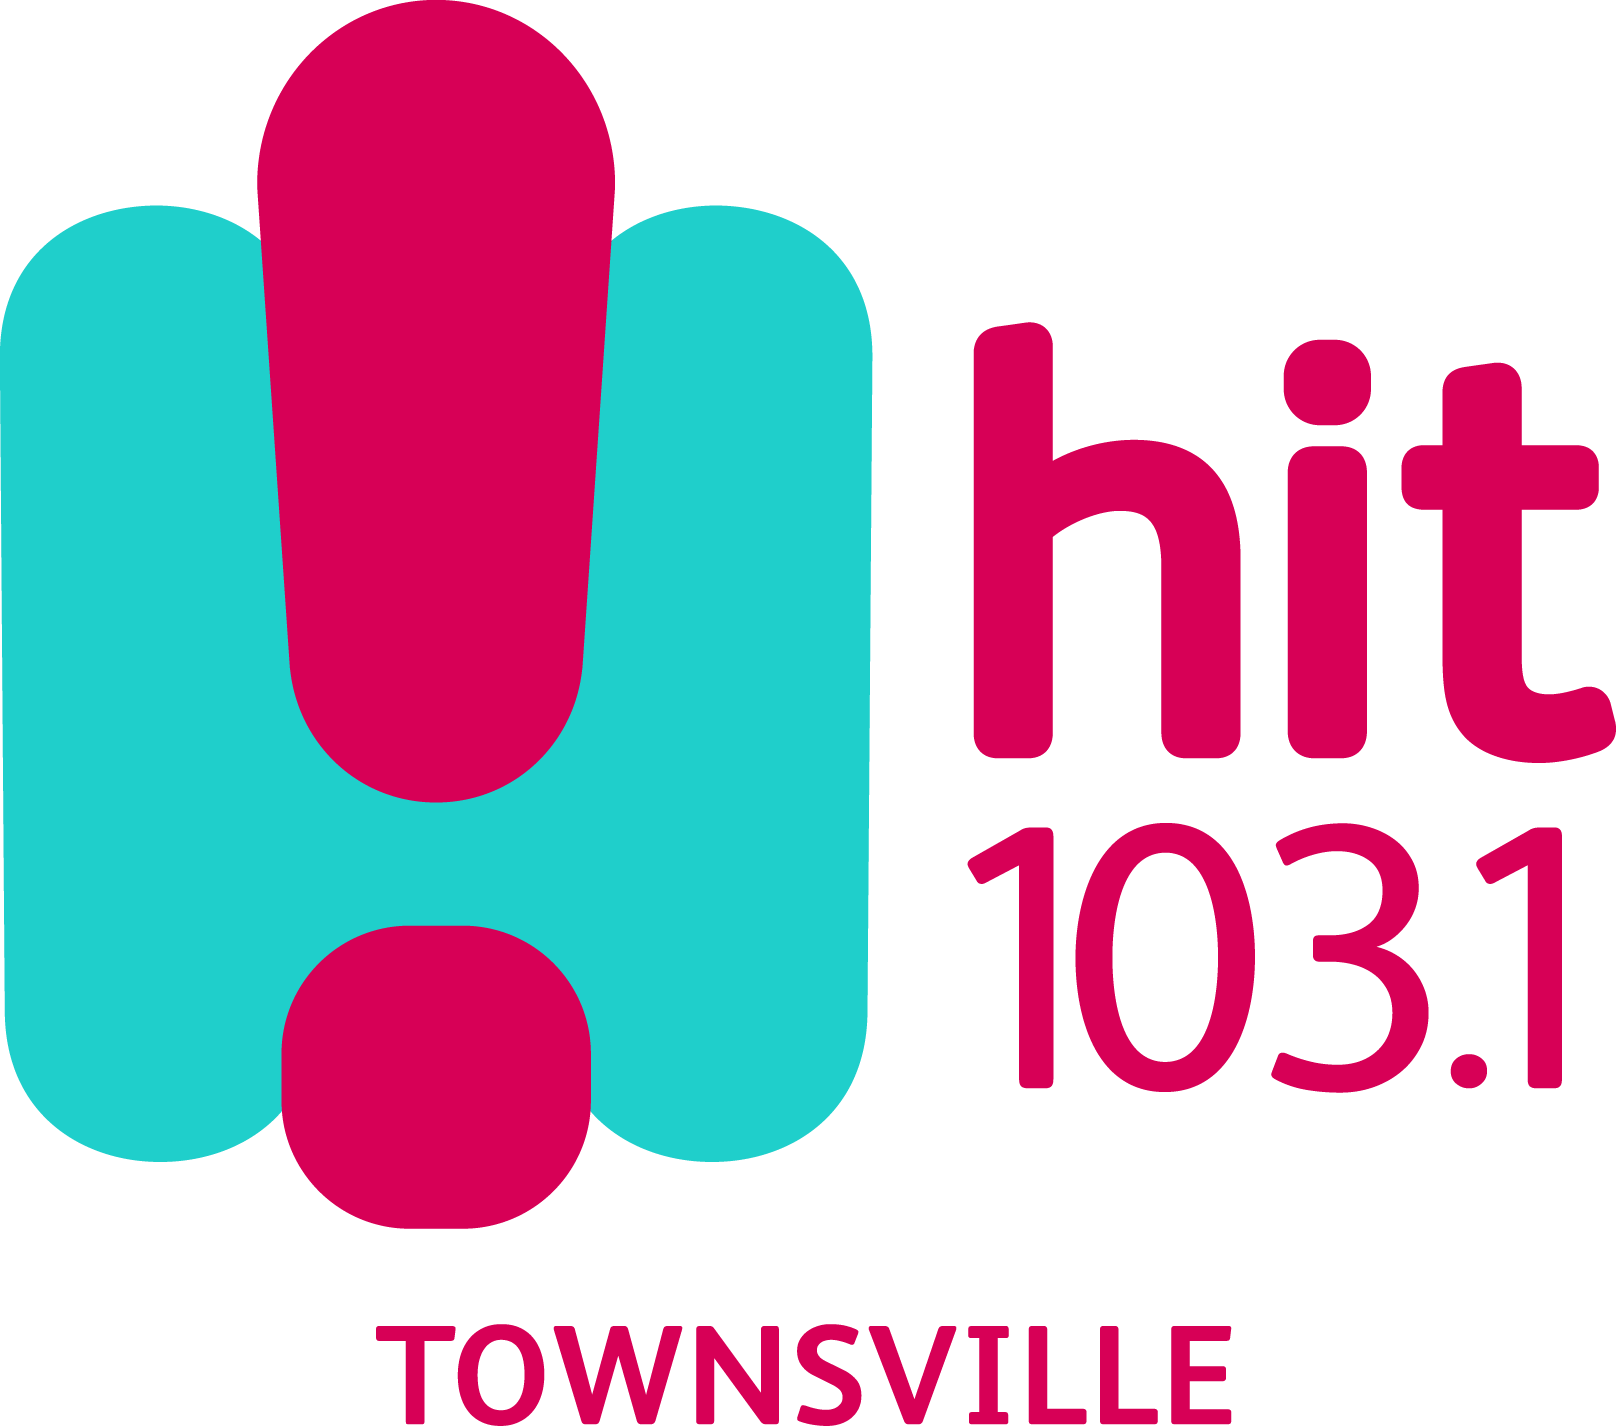 Radio hit103.1 Townsville